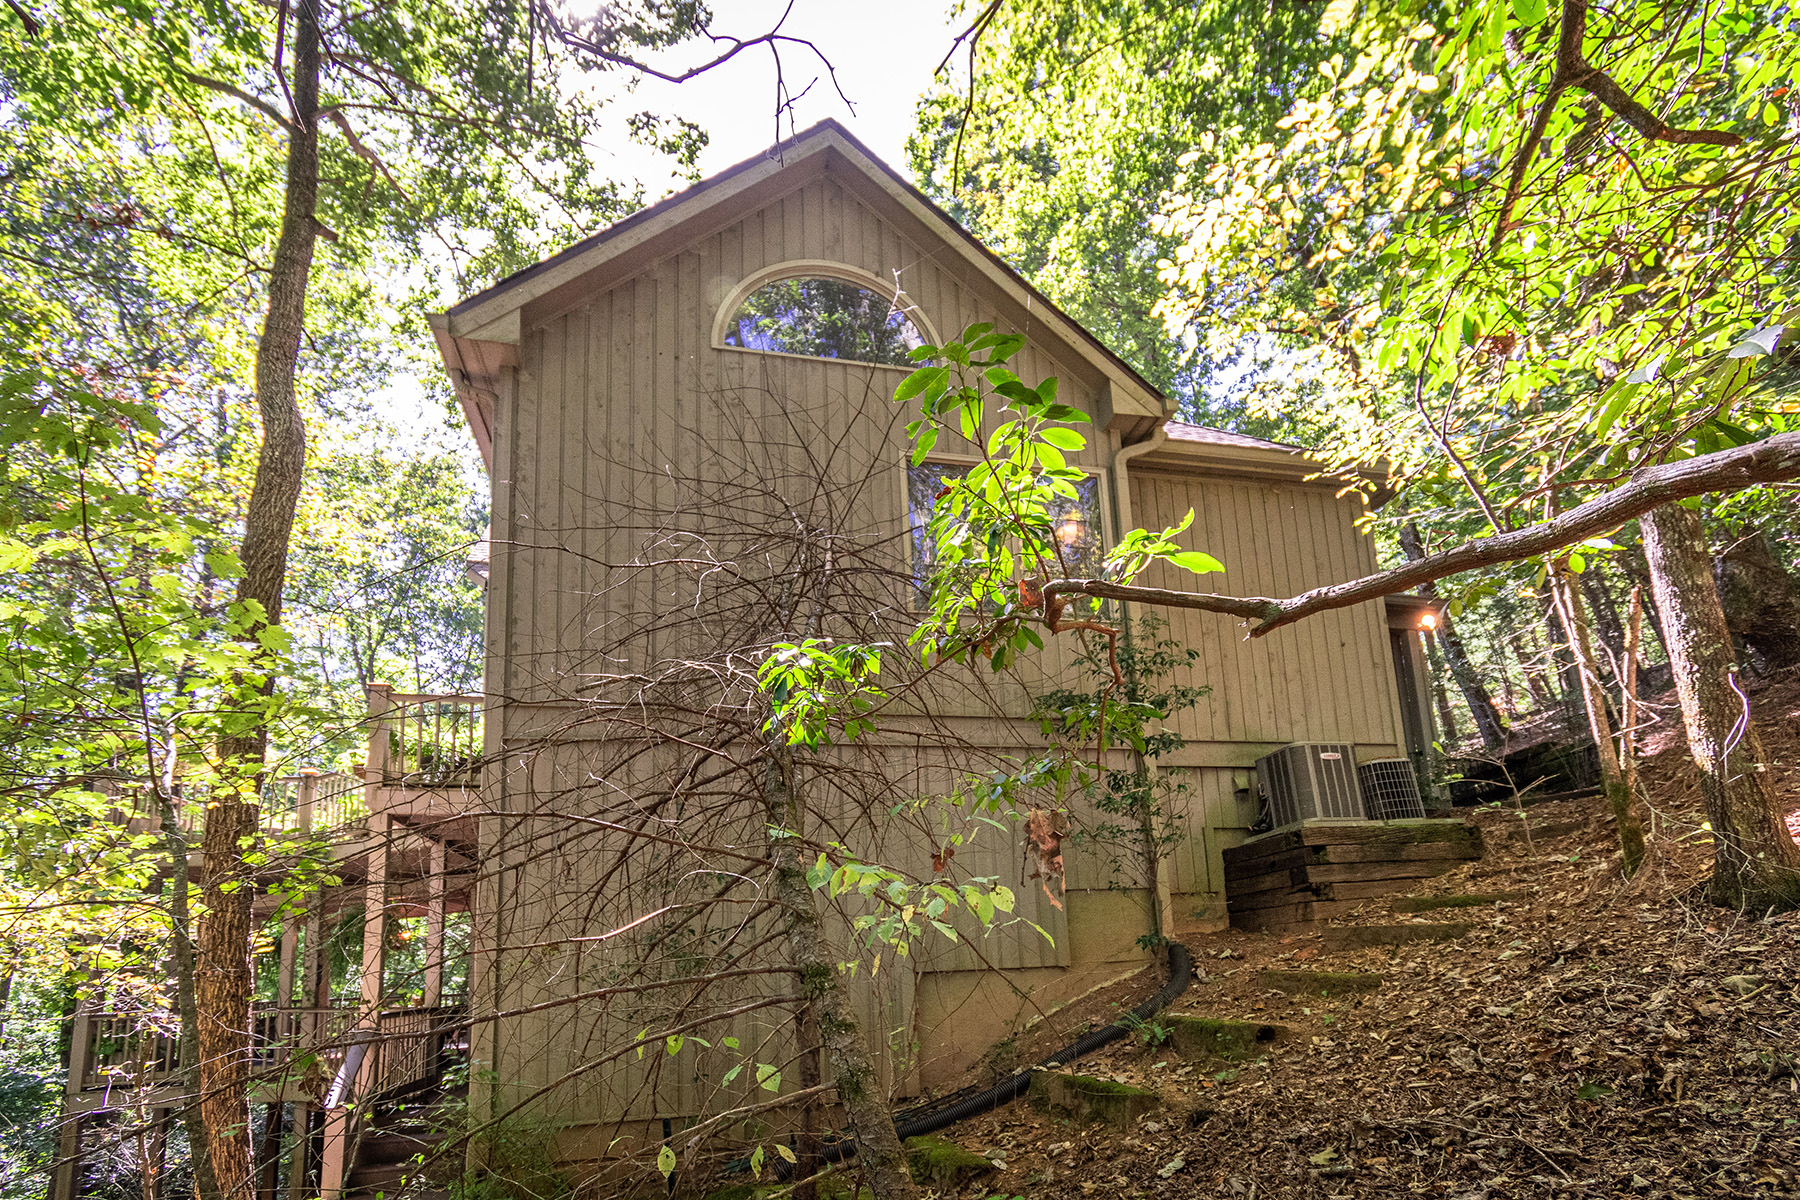 Additional photo for property listing at Architecturally Designed Home In  North Georgia Gated Mountain Community 146 Royal Fern Trail, Big Canoe, ジョージア 30143 アメリカ